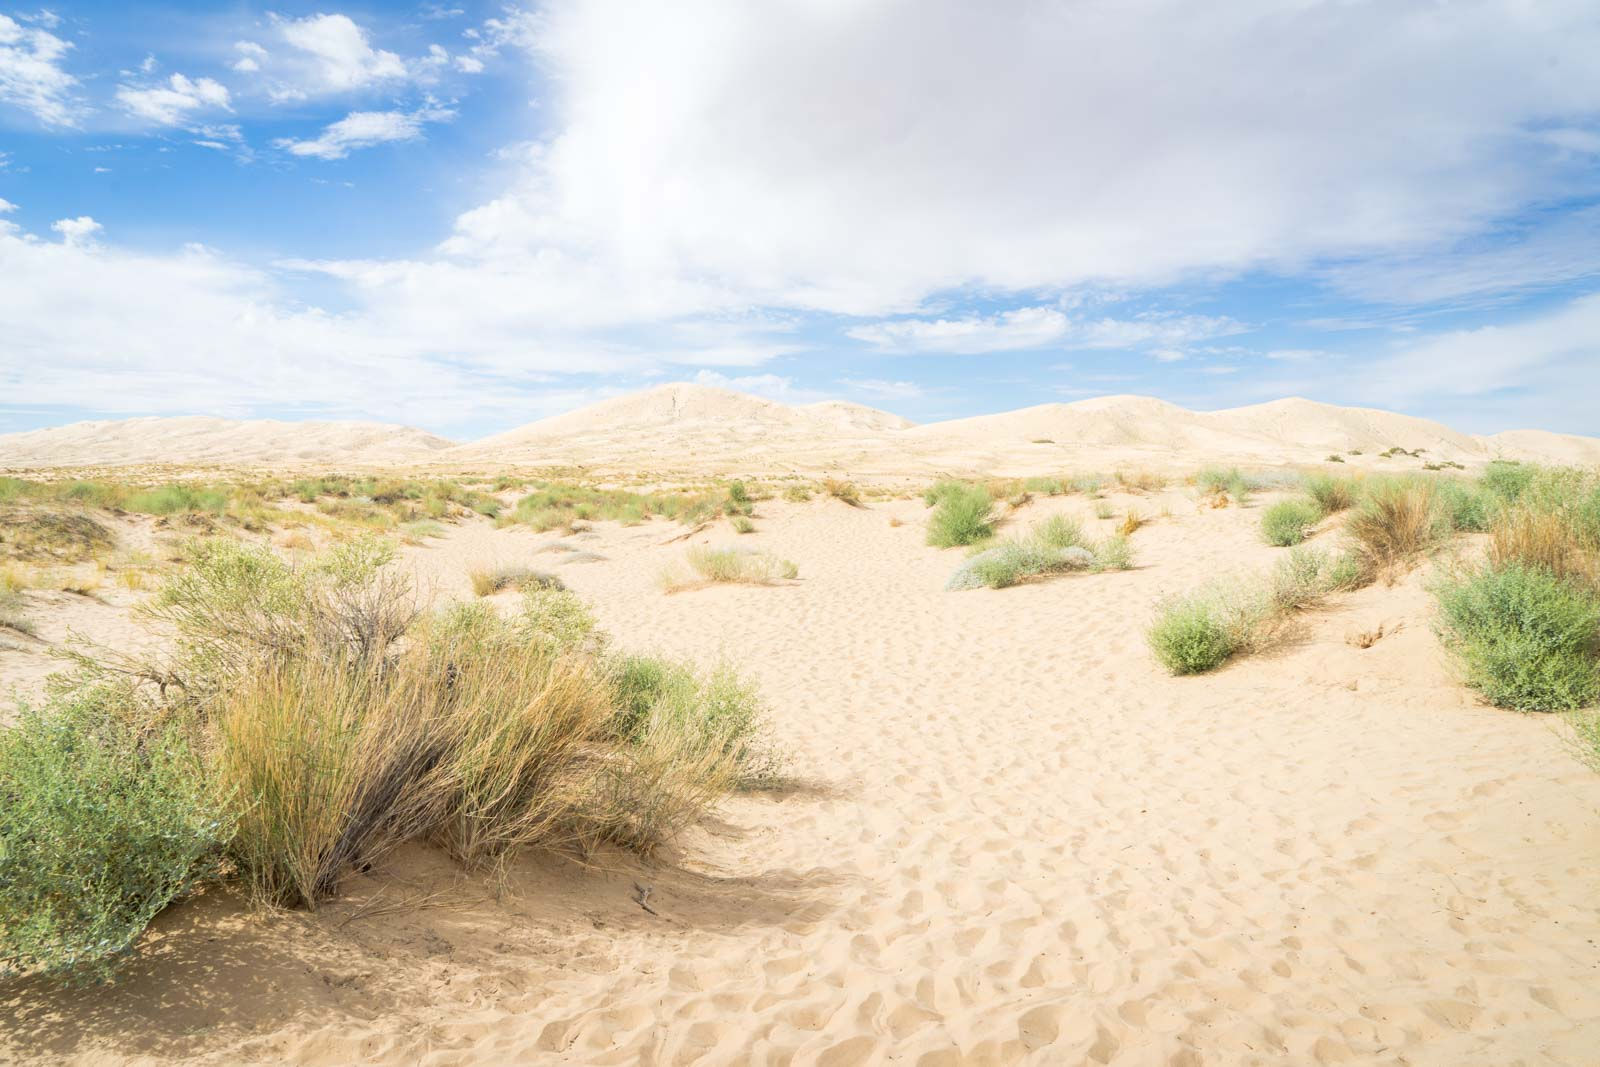 Kelso Dunes, Mojave National Preserve, California, USA